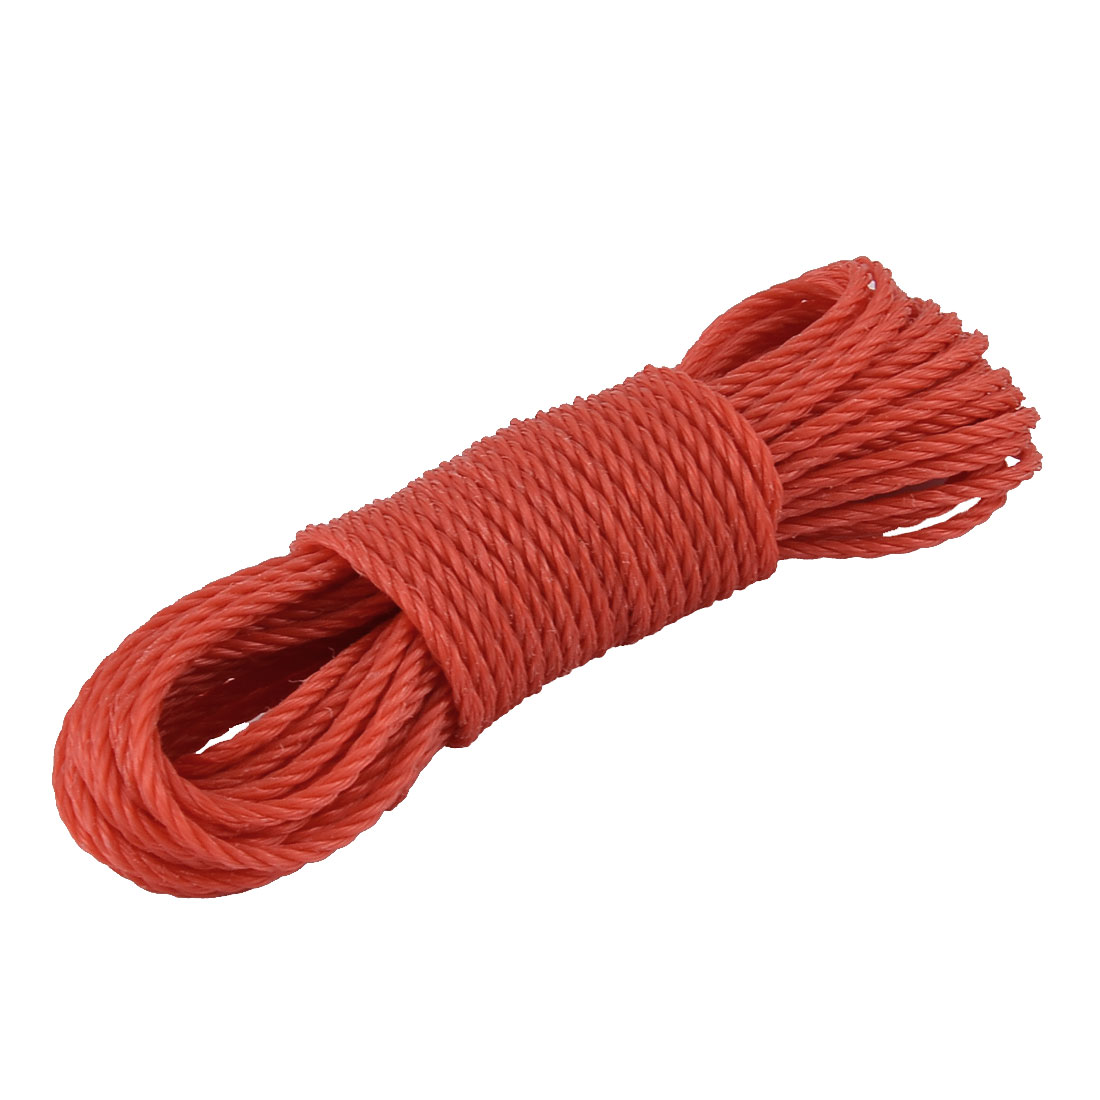 Laundry Nylon Sweater T-shirt Clothesline Hanger Rope String Red 10m Length